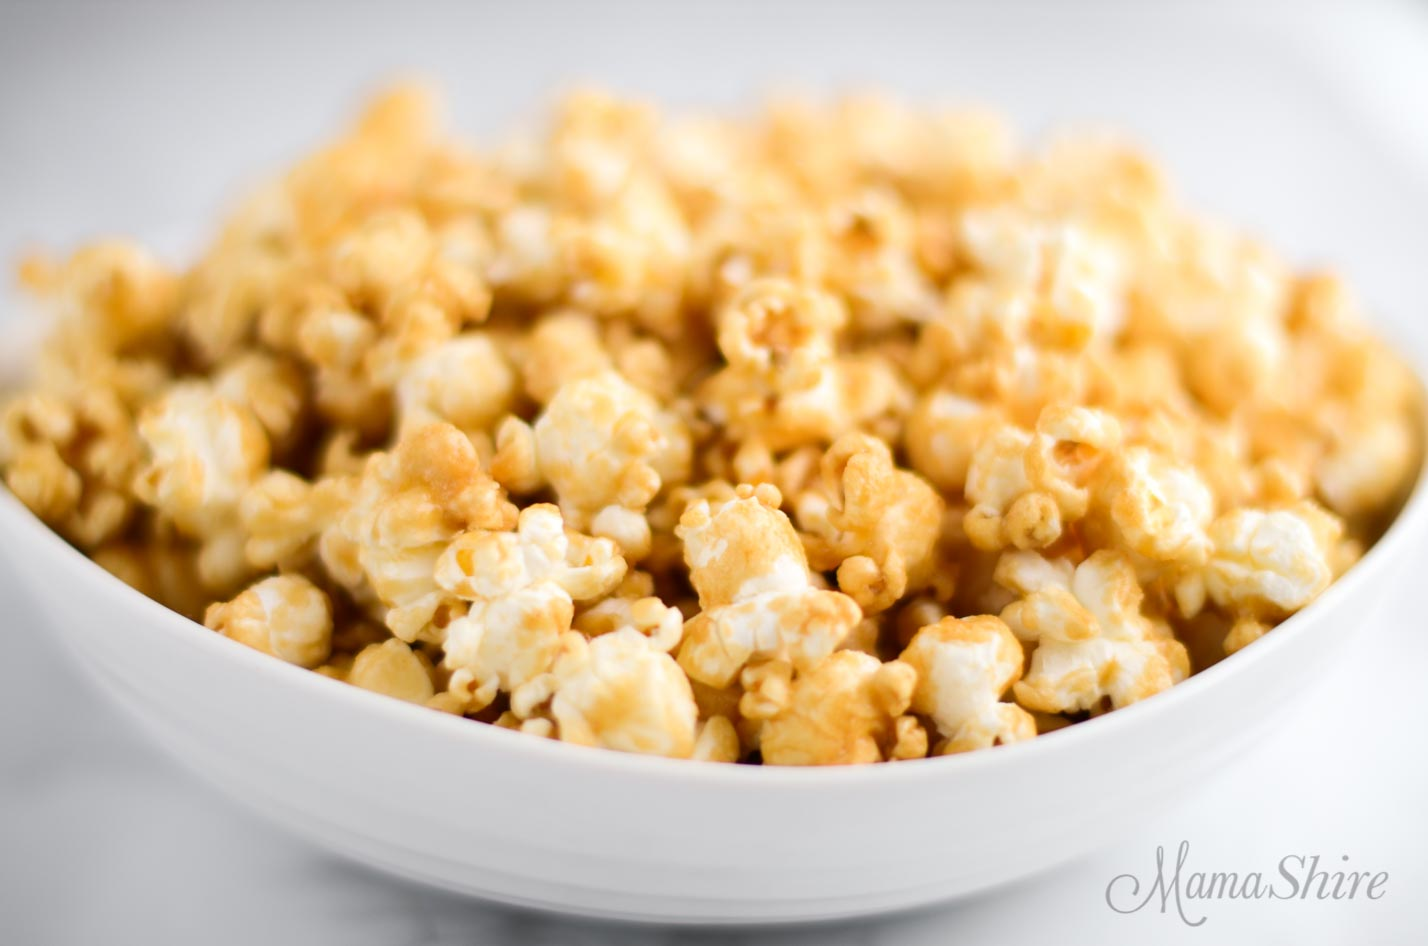 A bowl of homemade caramel corn made without corn syrup.